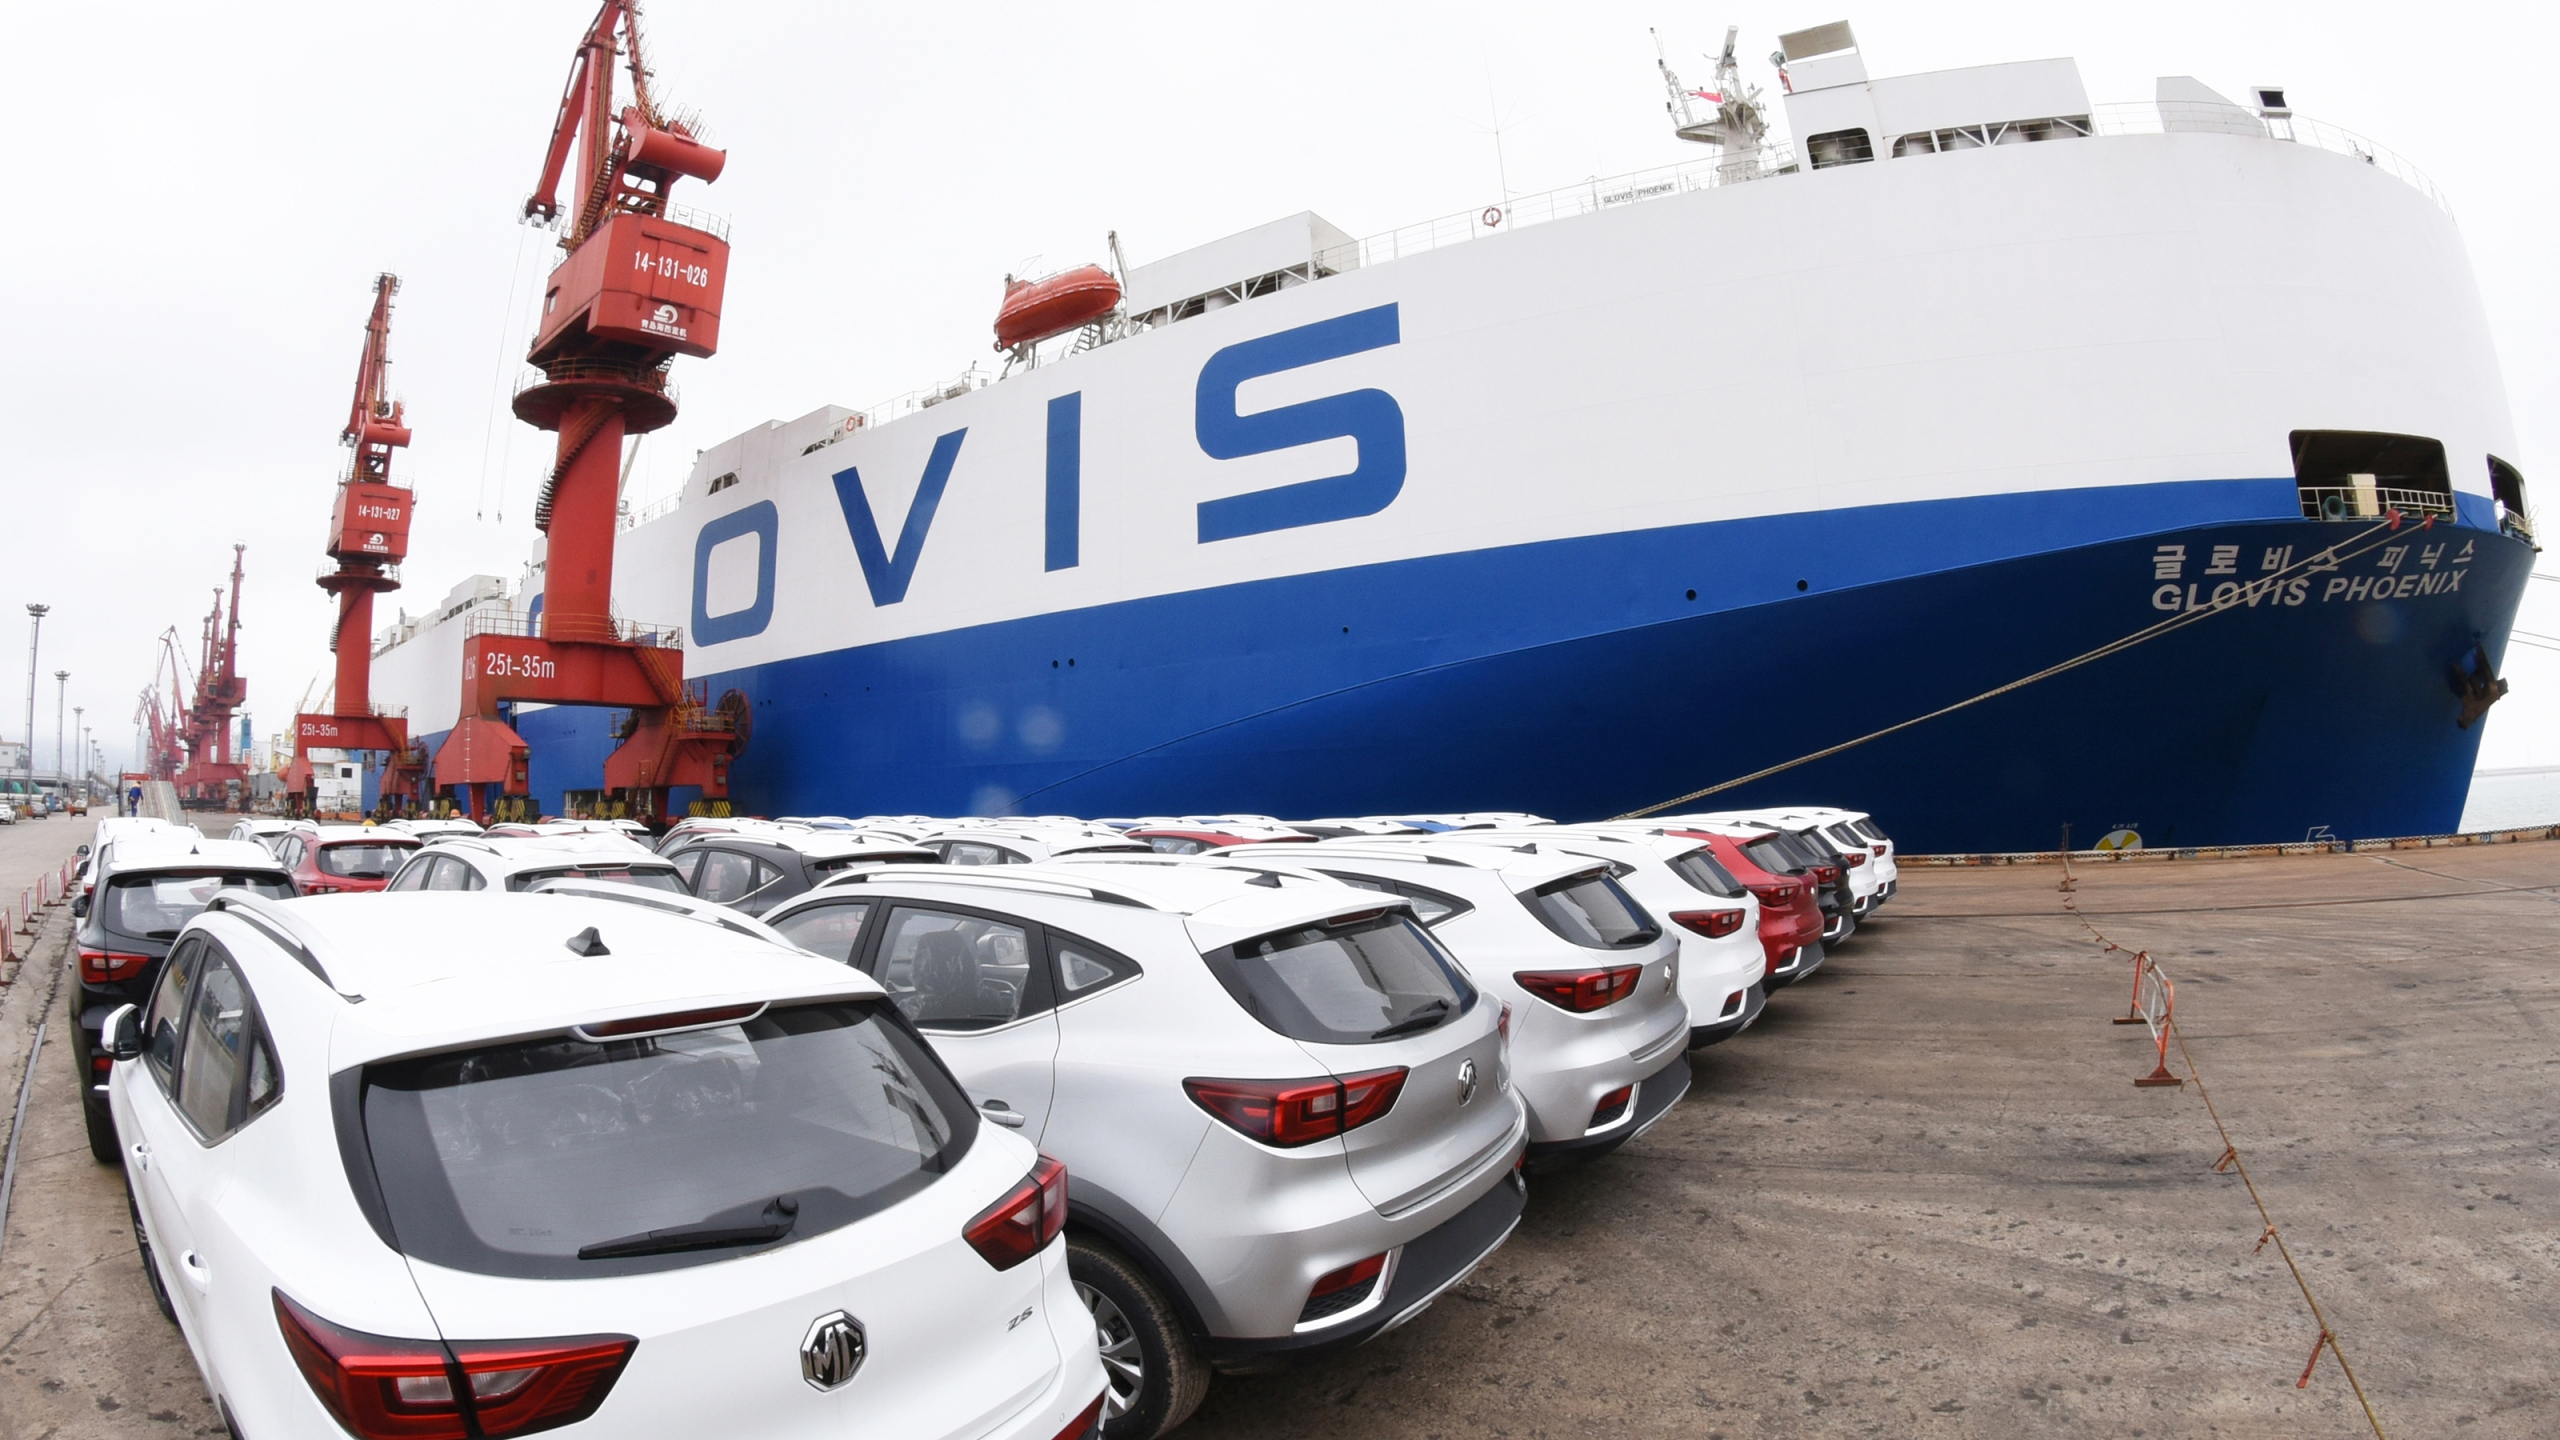 This photo taken on May 26, 2018 shows MG cars produced by Shanghai Automotive Industry Corporation waiting to be exported to the US at a port in Lianyungang in China's eastern Jiangsu province. Donald Trump's threat to impose steep tariffs on auto imports will hit foreign automakers that export a large number of vehicles to the US market, but many also manufacture cars domestically. (Credit: AFP/Getty Images)